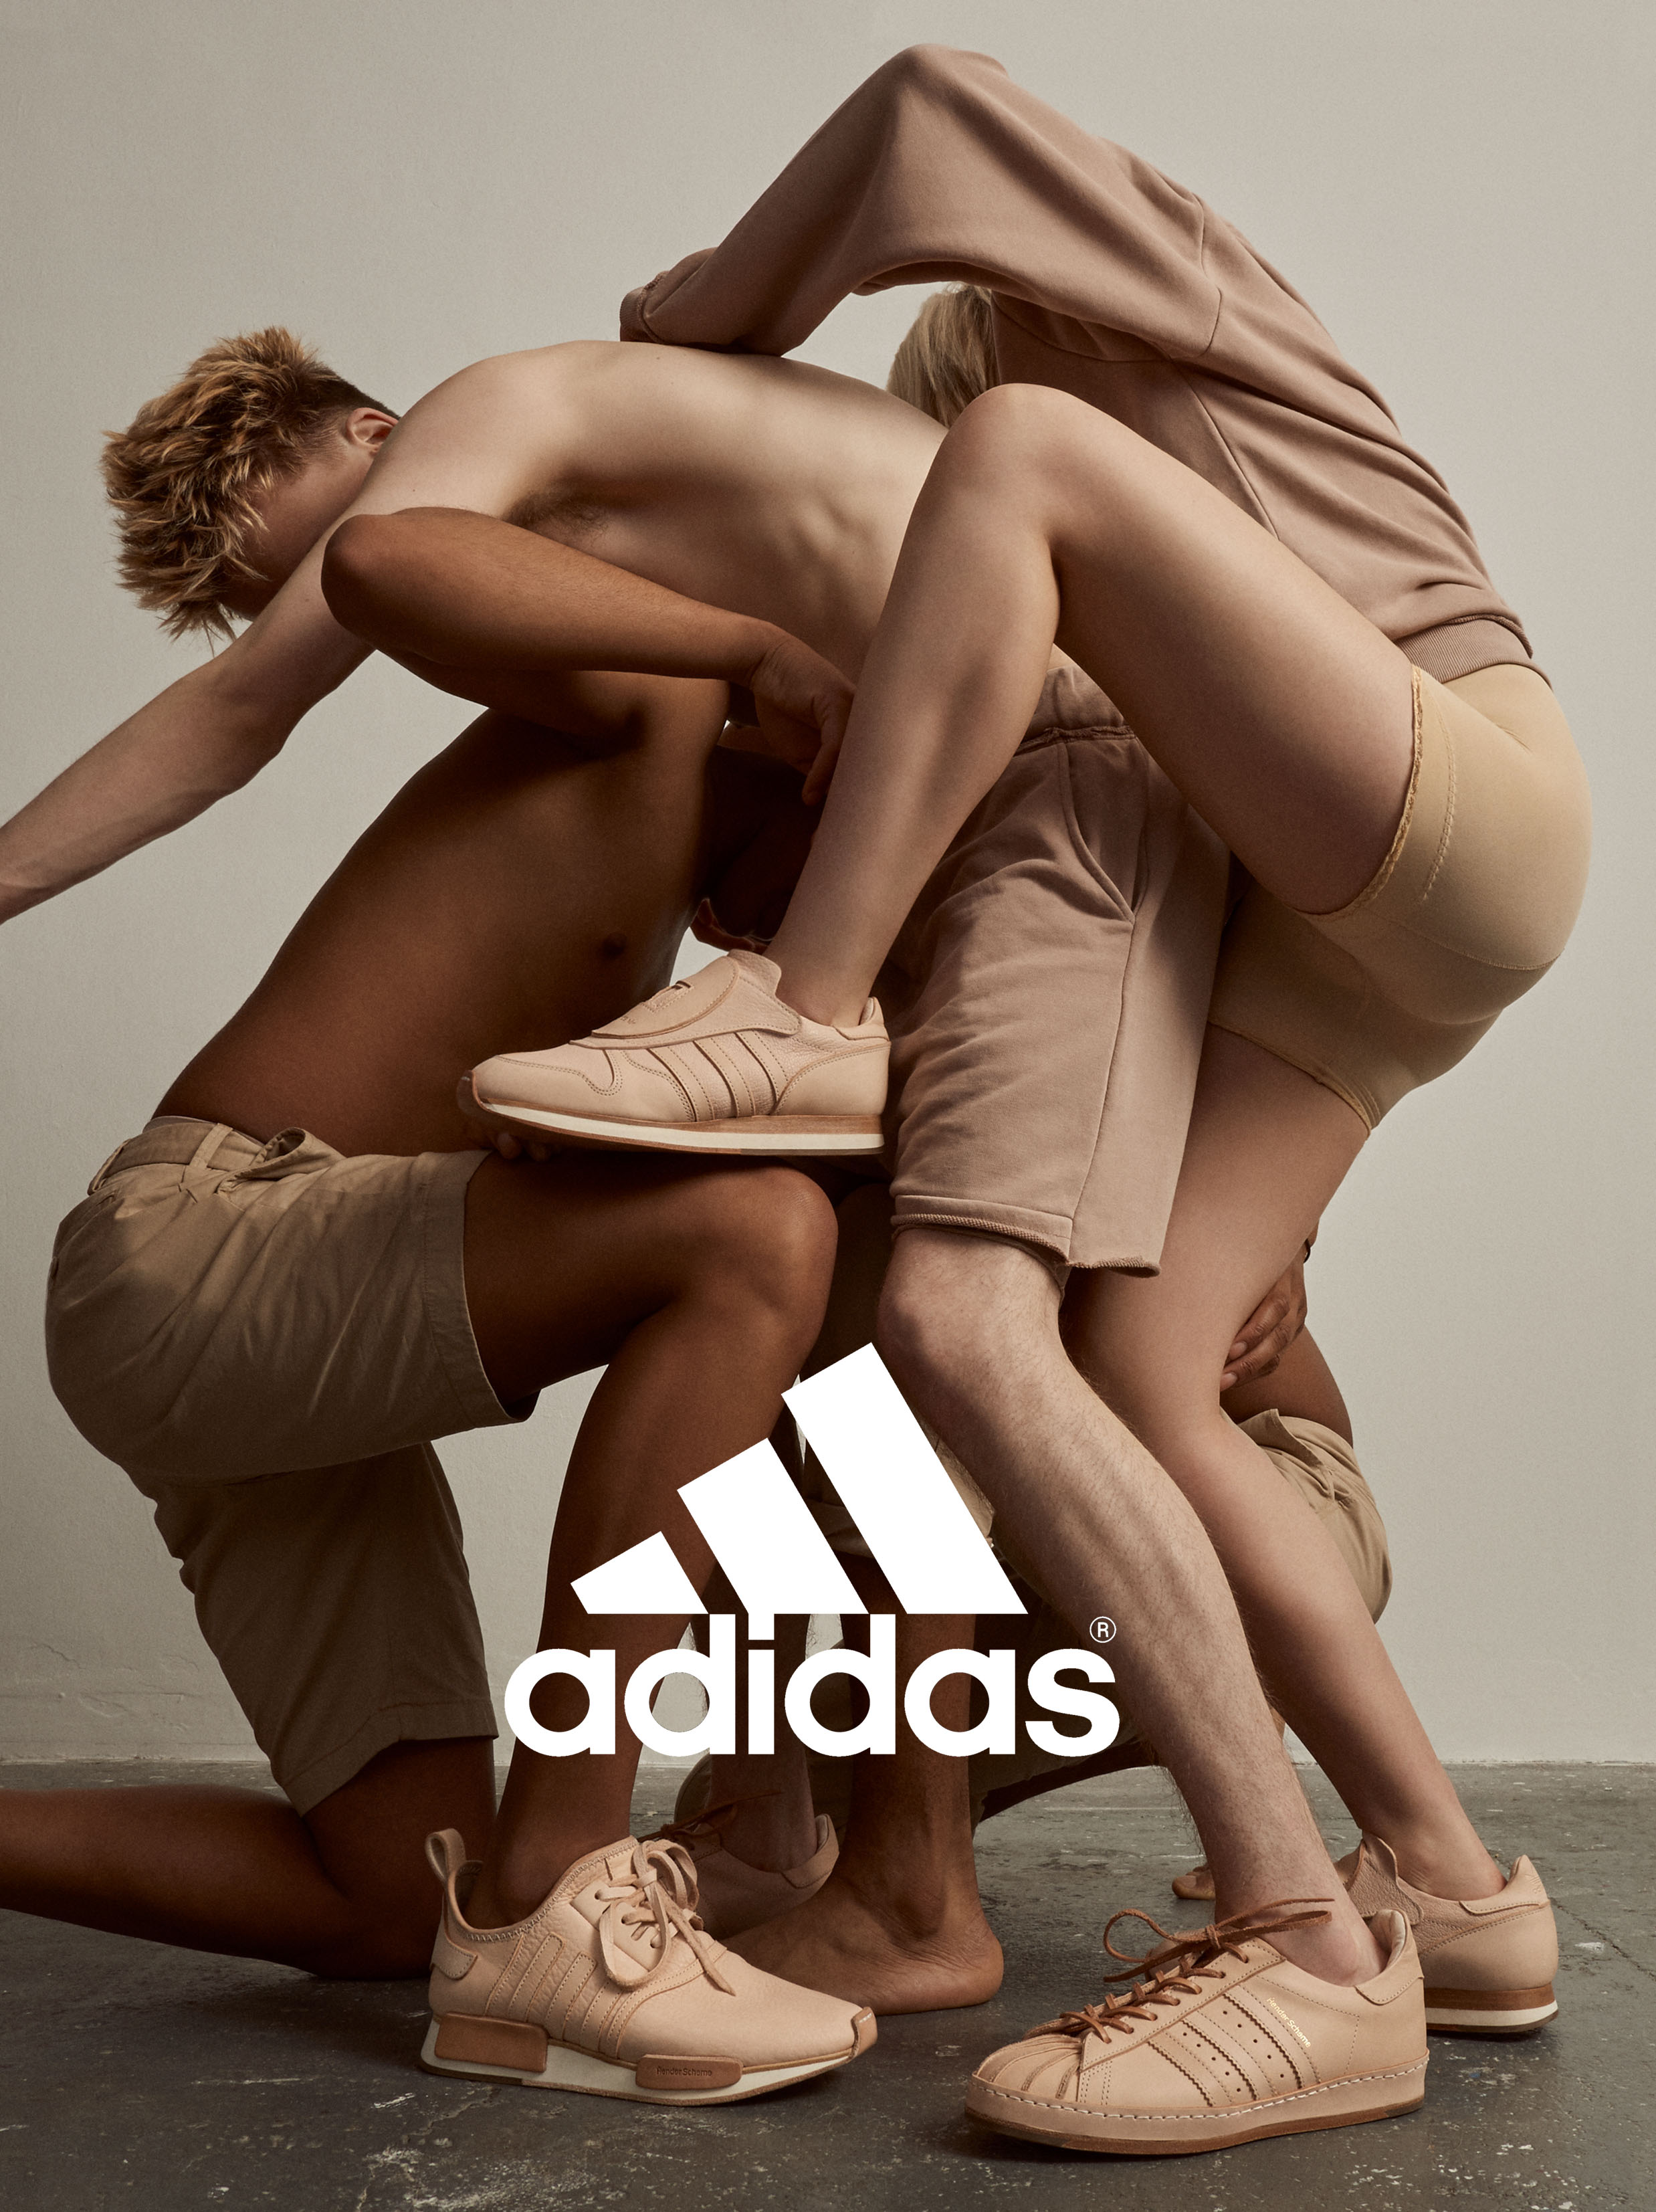 Adidas Originals x Hender Scheme F/W 2017 | Numerique Retouch Photo Retouching Studio